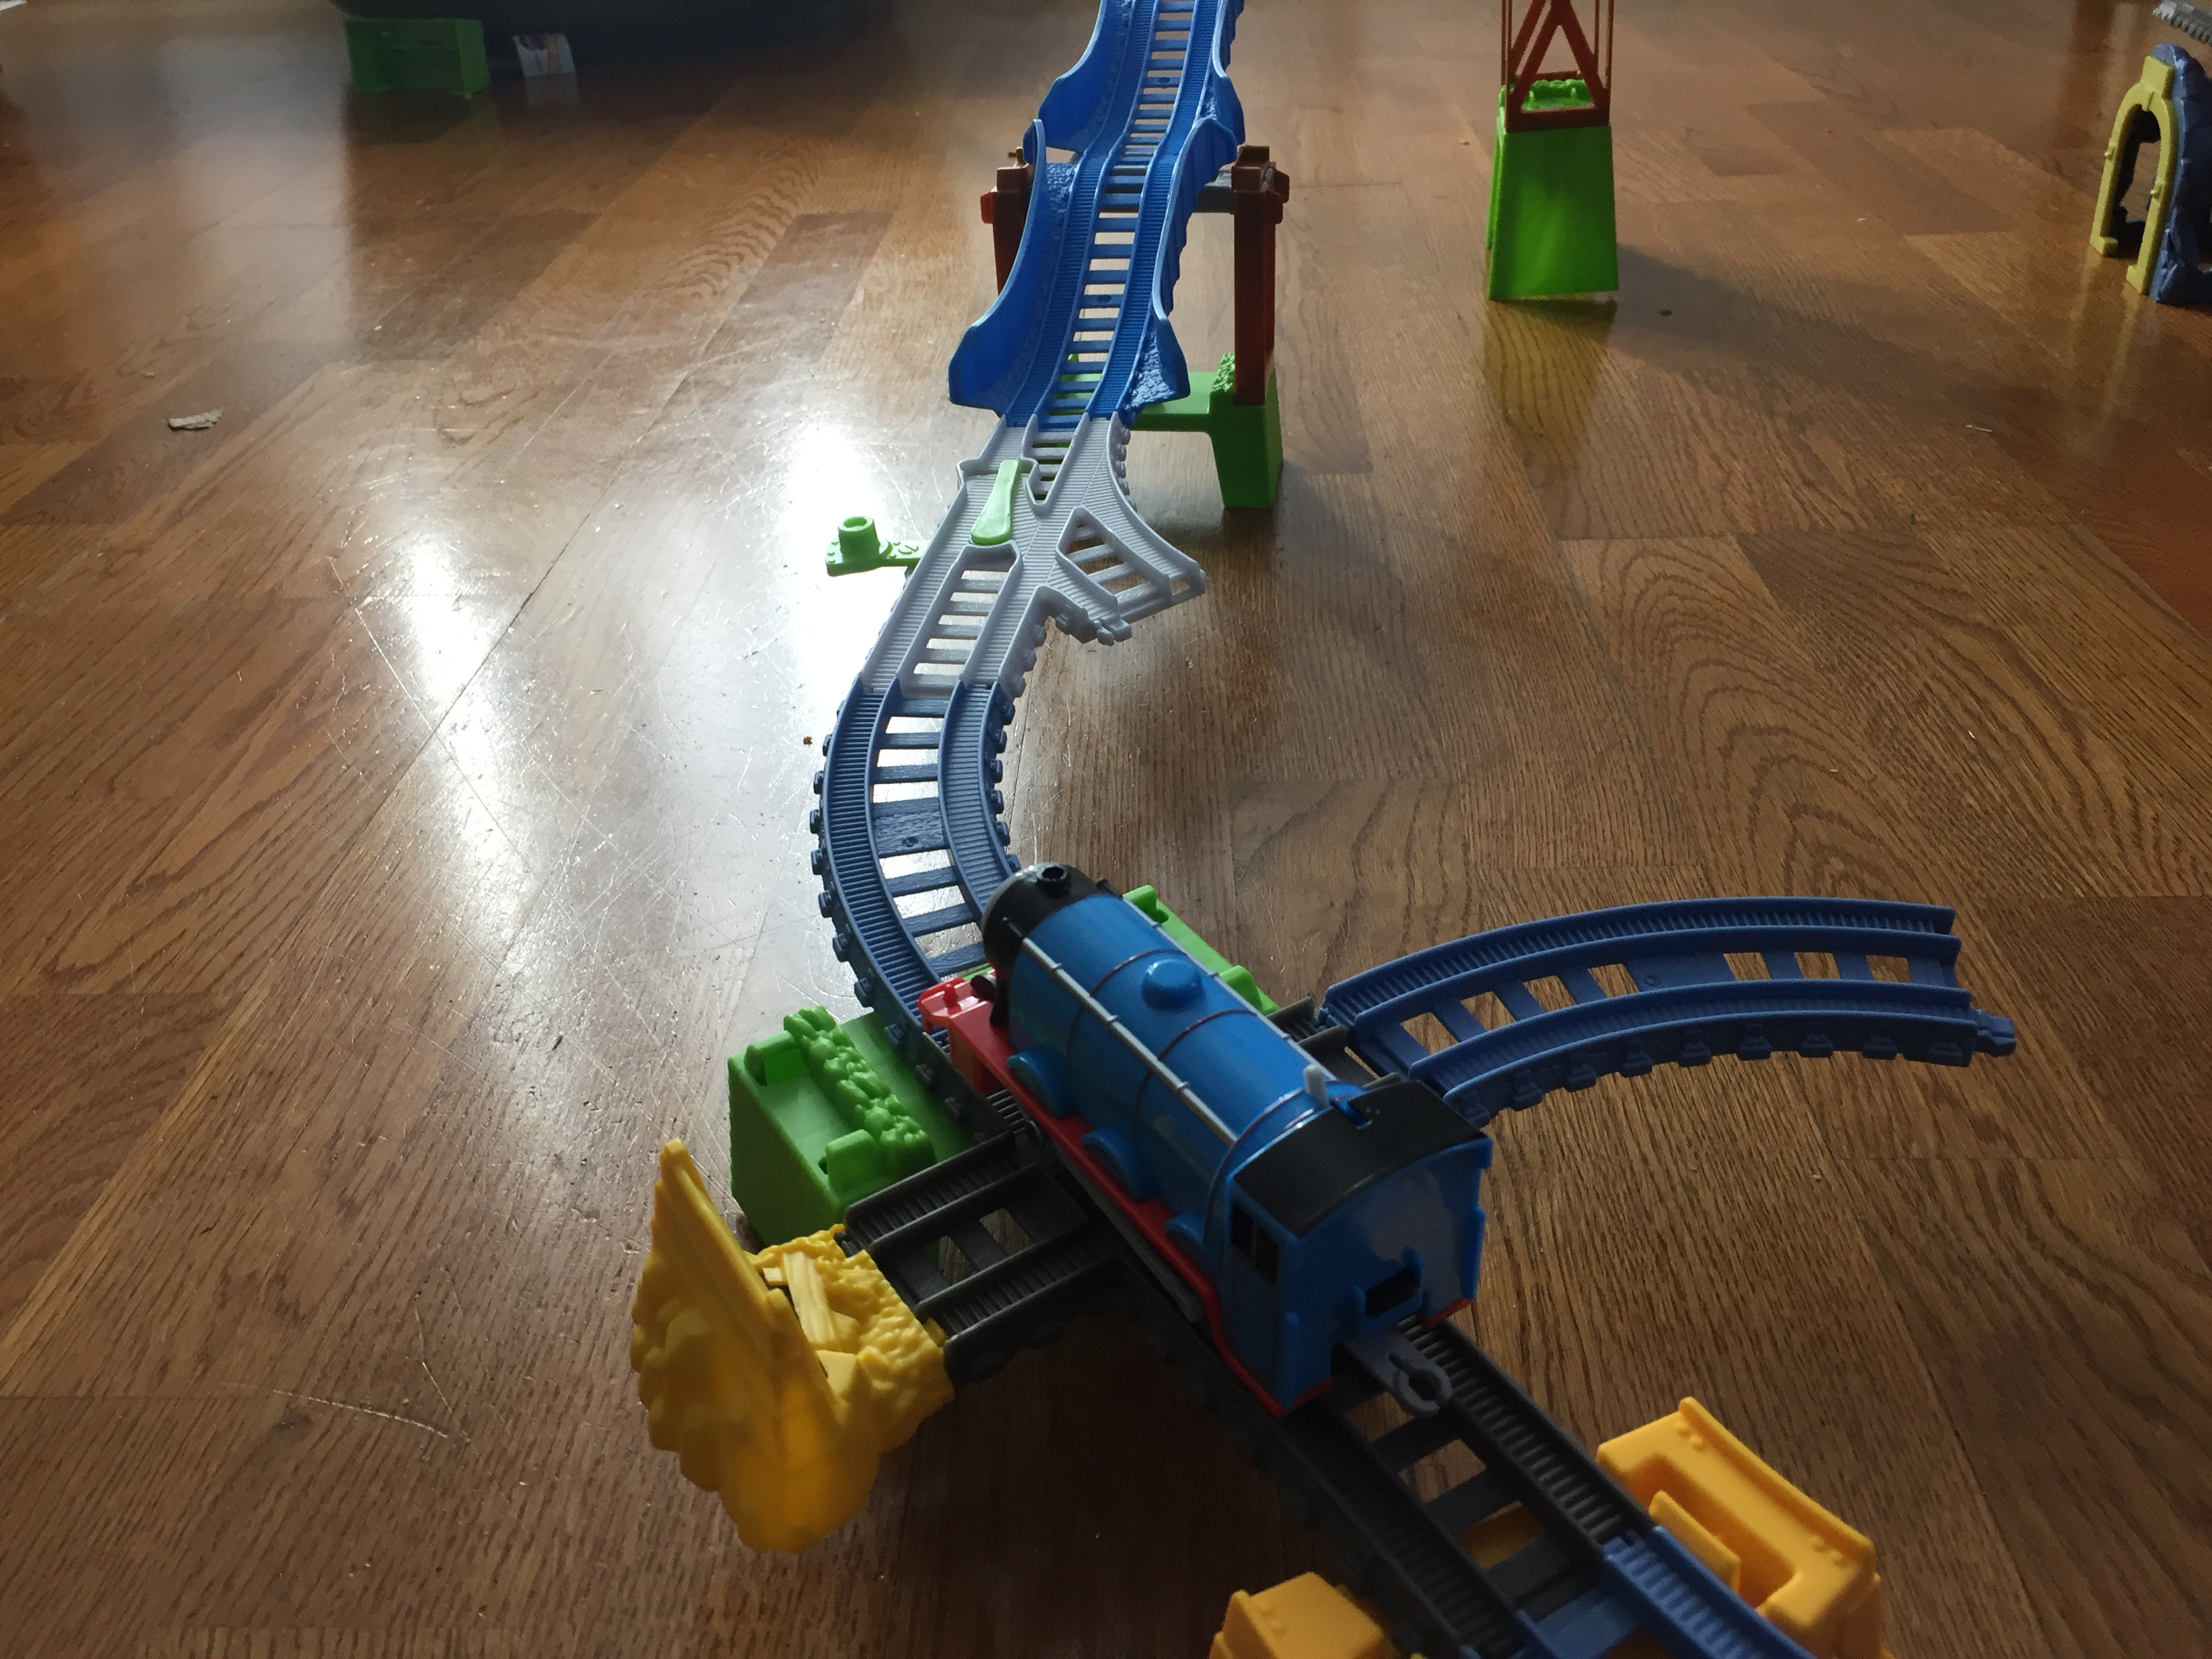 Isaiah's new train set.